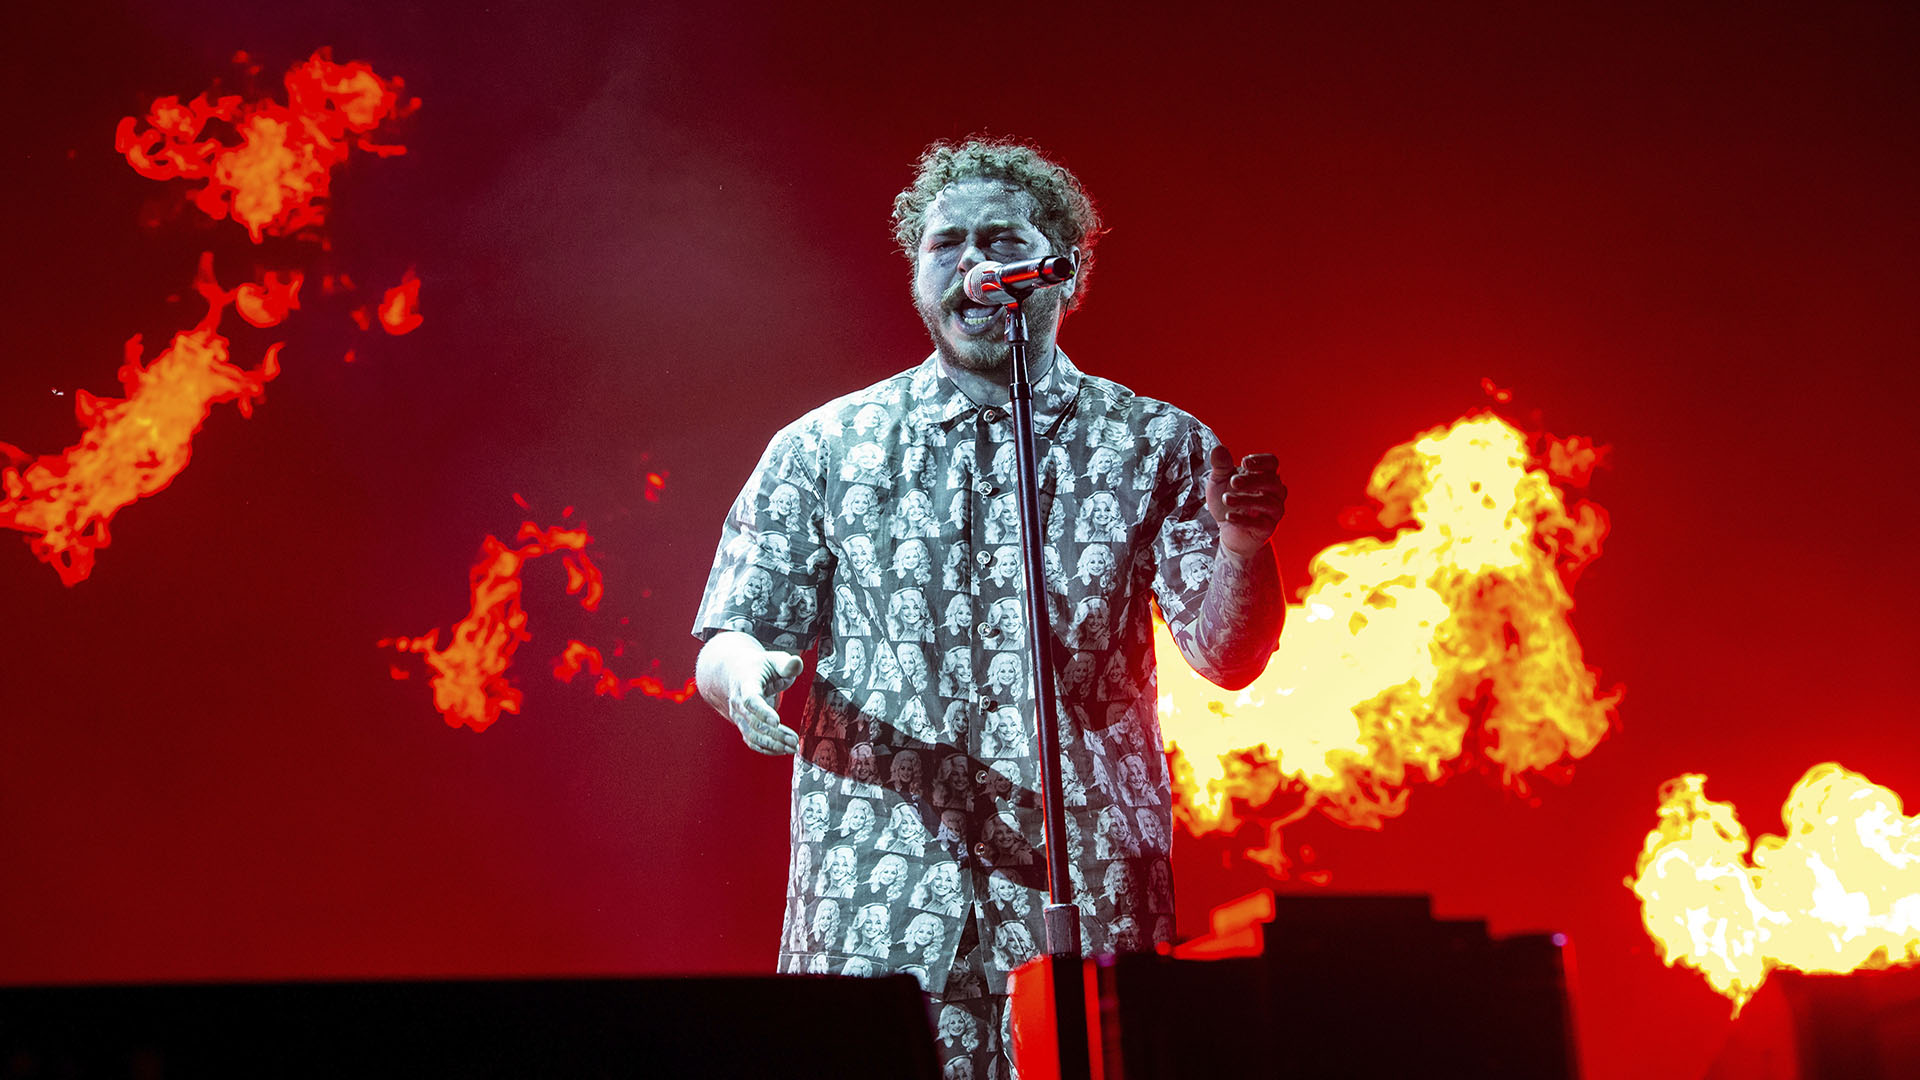 Post Malone to perform at the KeyBank Center in October